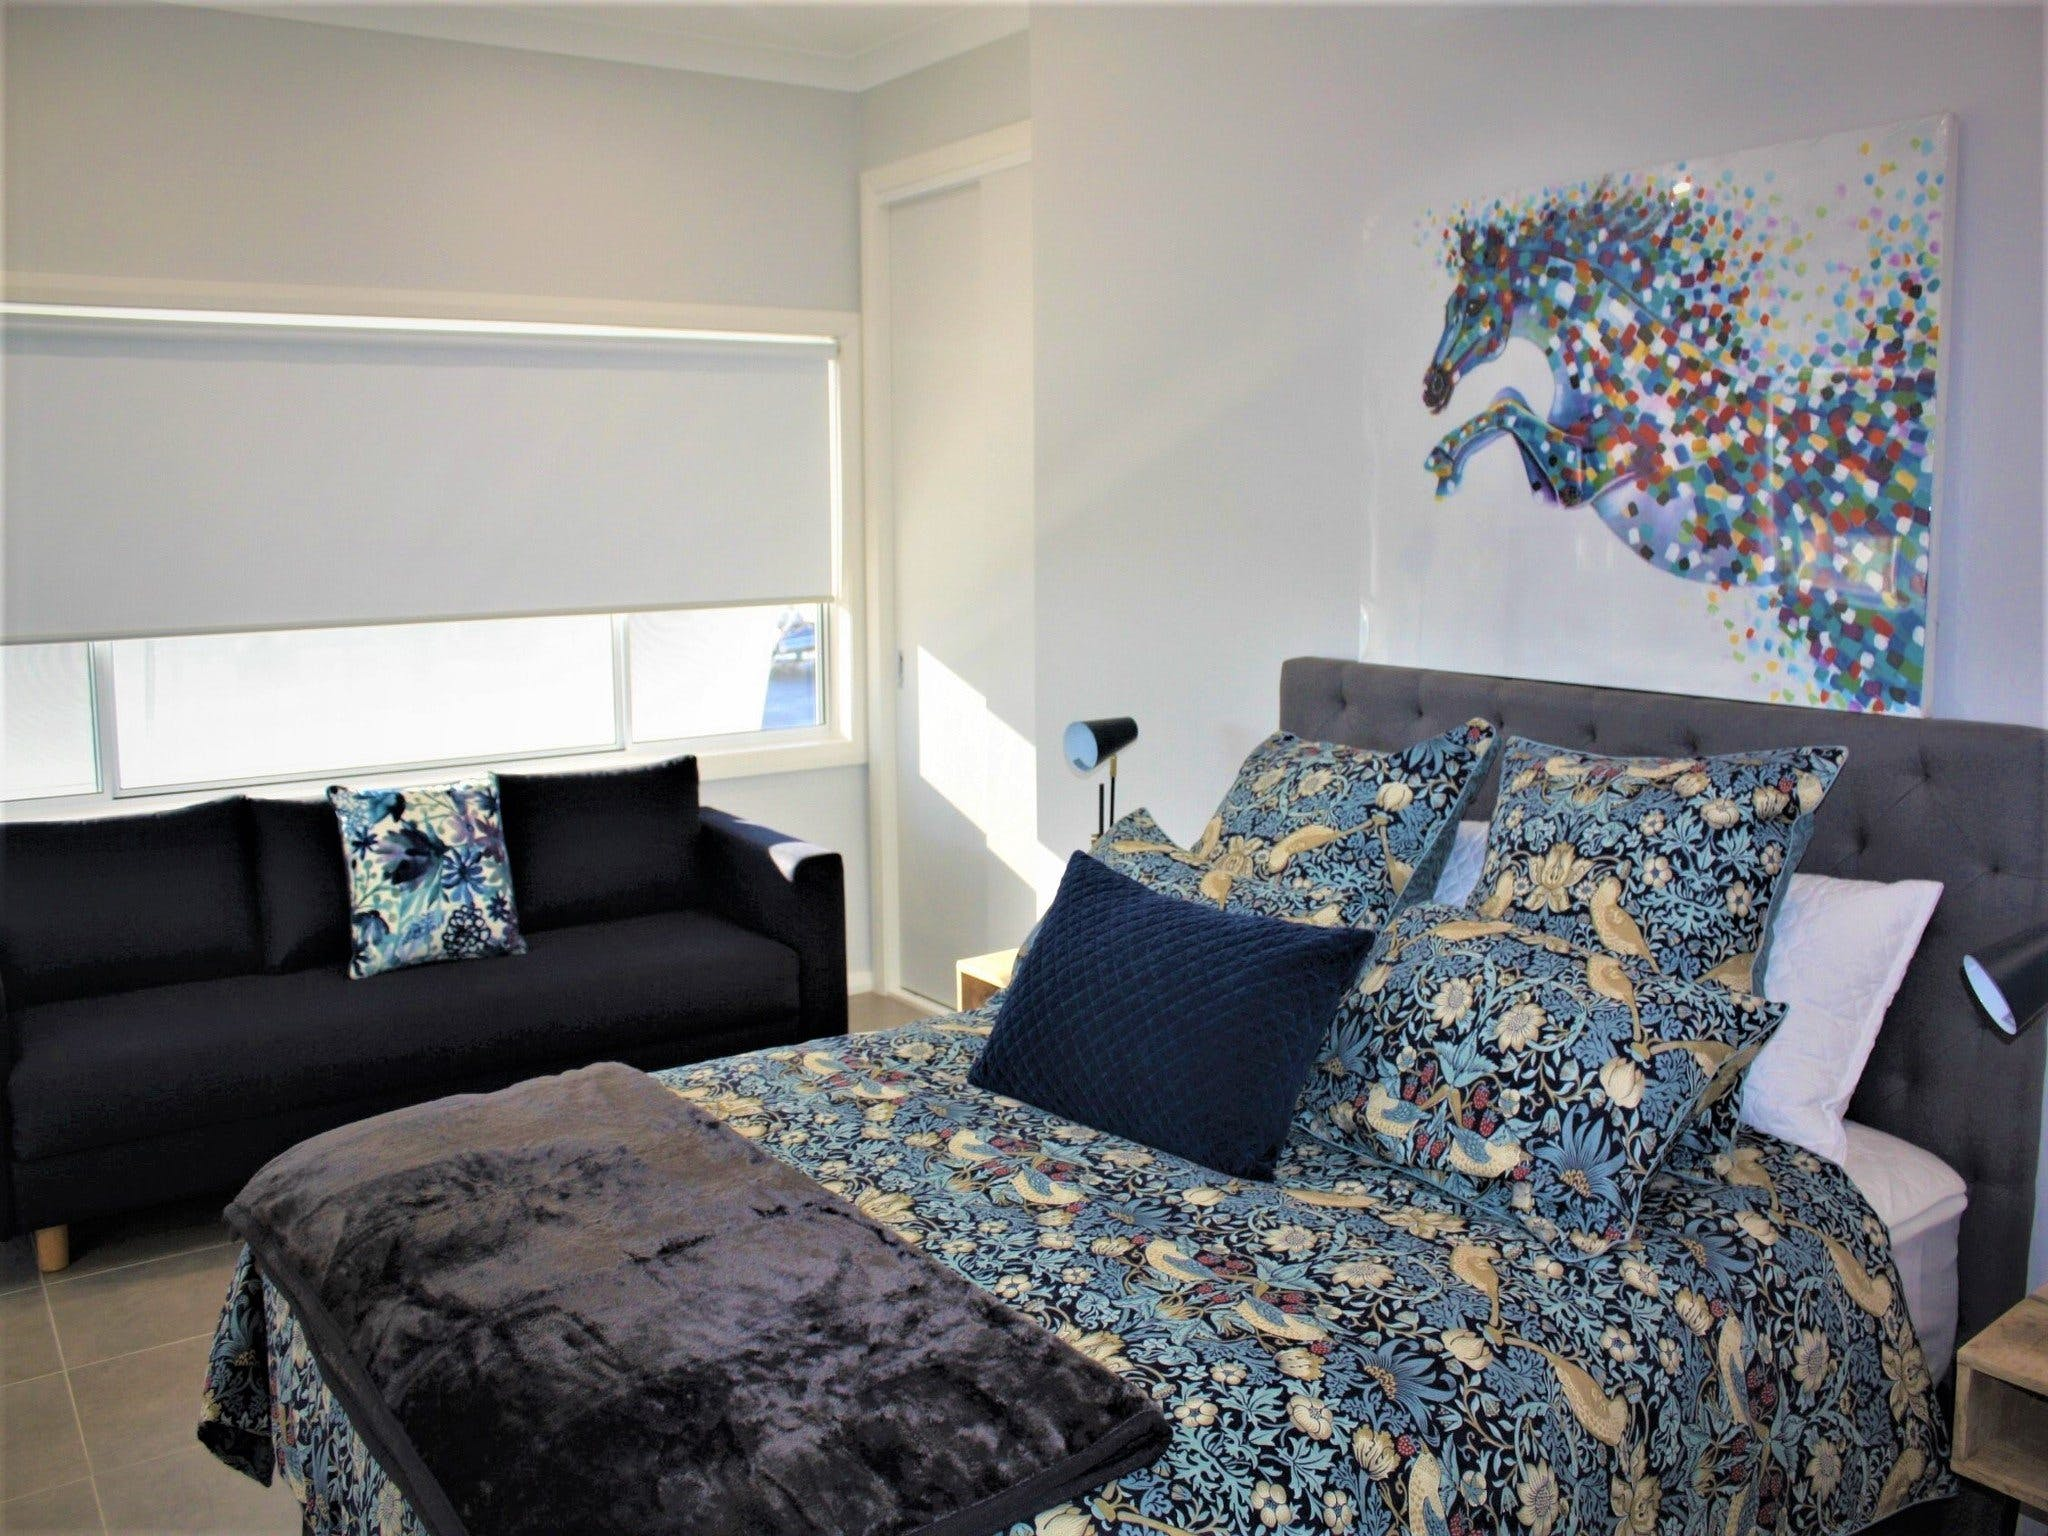 Coolah Shorts - Self Contained Apartments - Lennox Head Accommodation